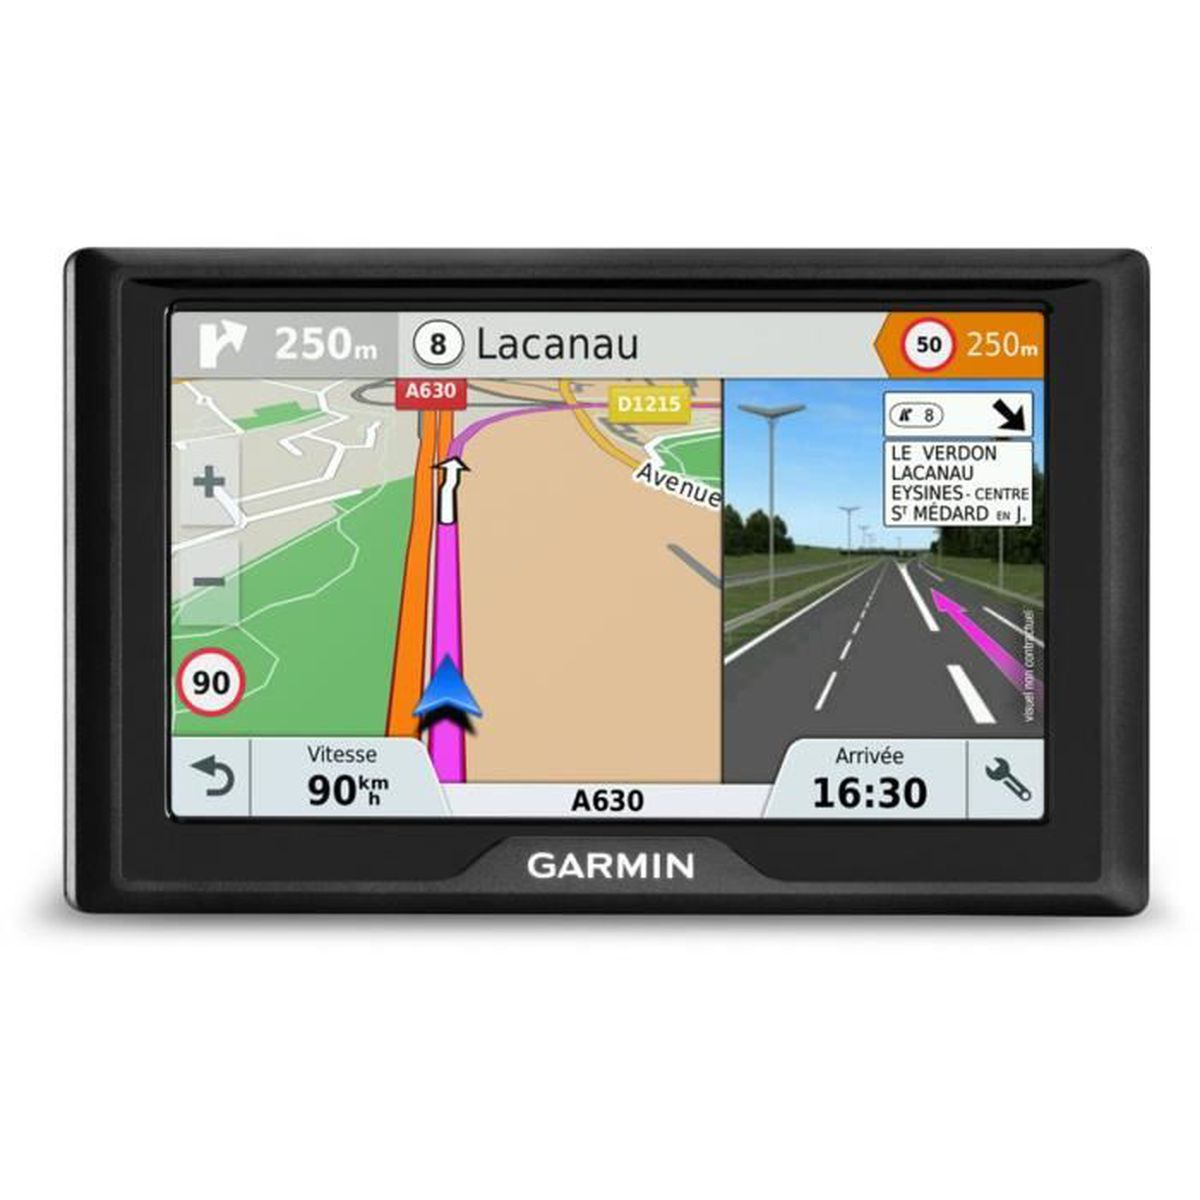 gps garmin drive 51 se lmt s achat vente gps auto gps garmin drive 51 se lmt s les soldes. Black Bedroom Furniture Sets. Home Design Ideas